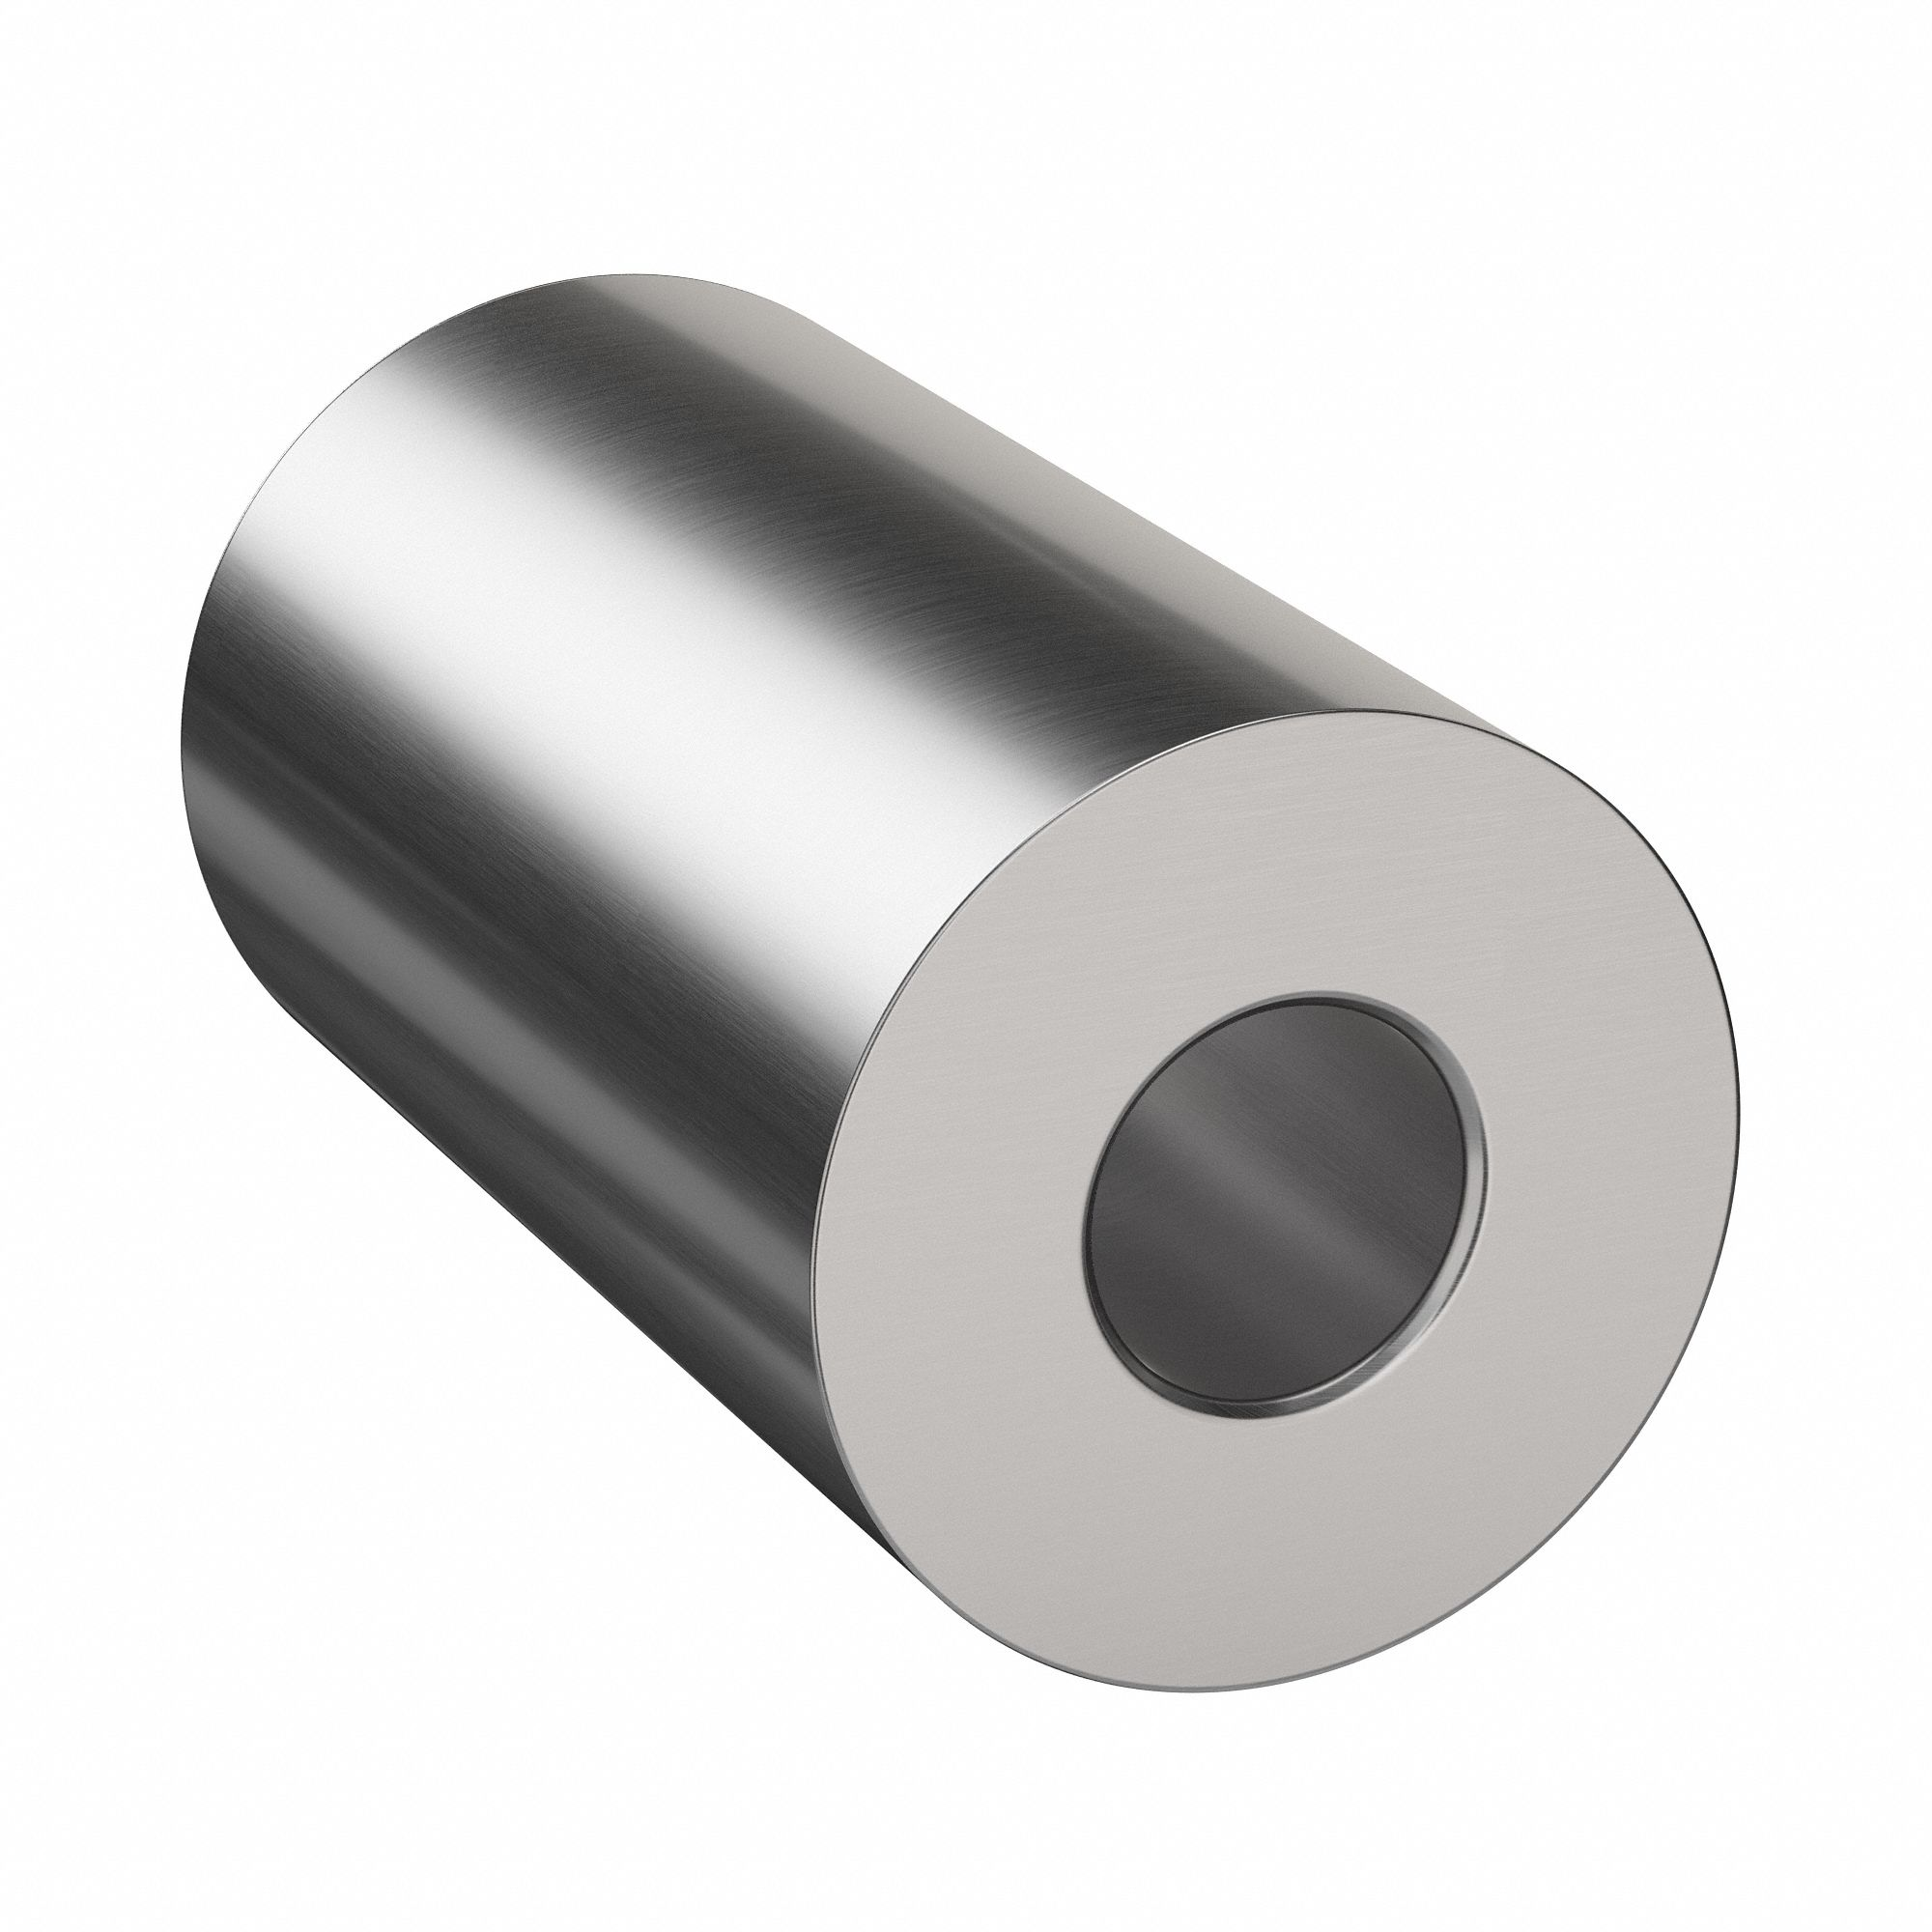 Aluminum Spacer 3//4 OD x 5//16 ID x 5//8 L Round by Metal Spacers Online 25